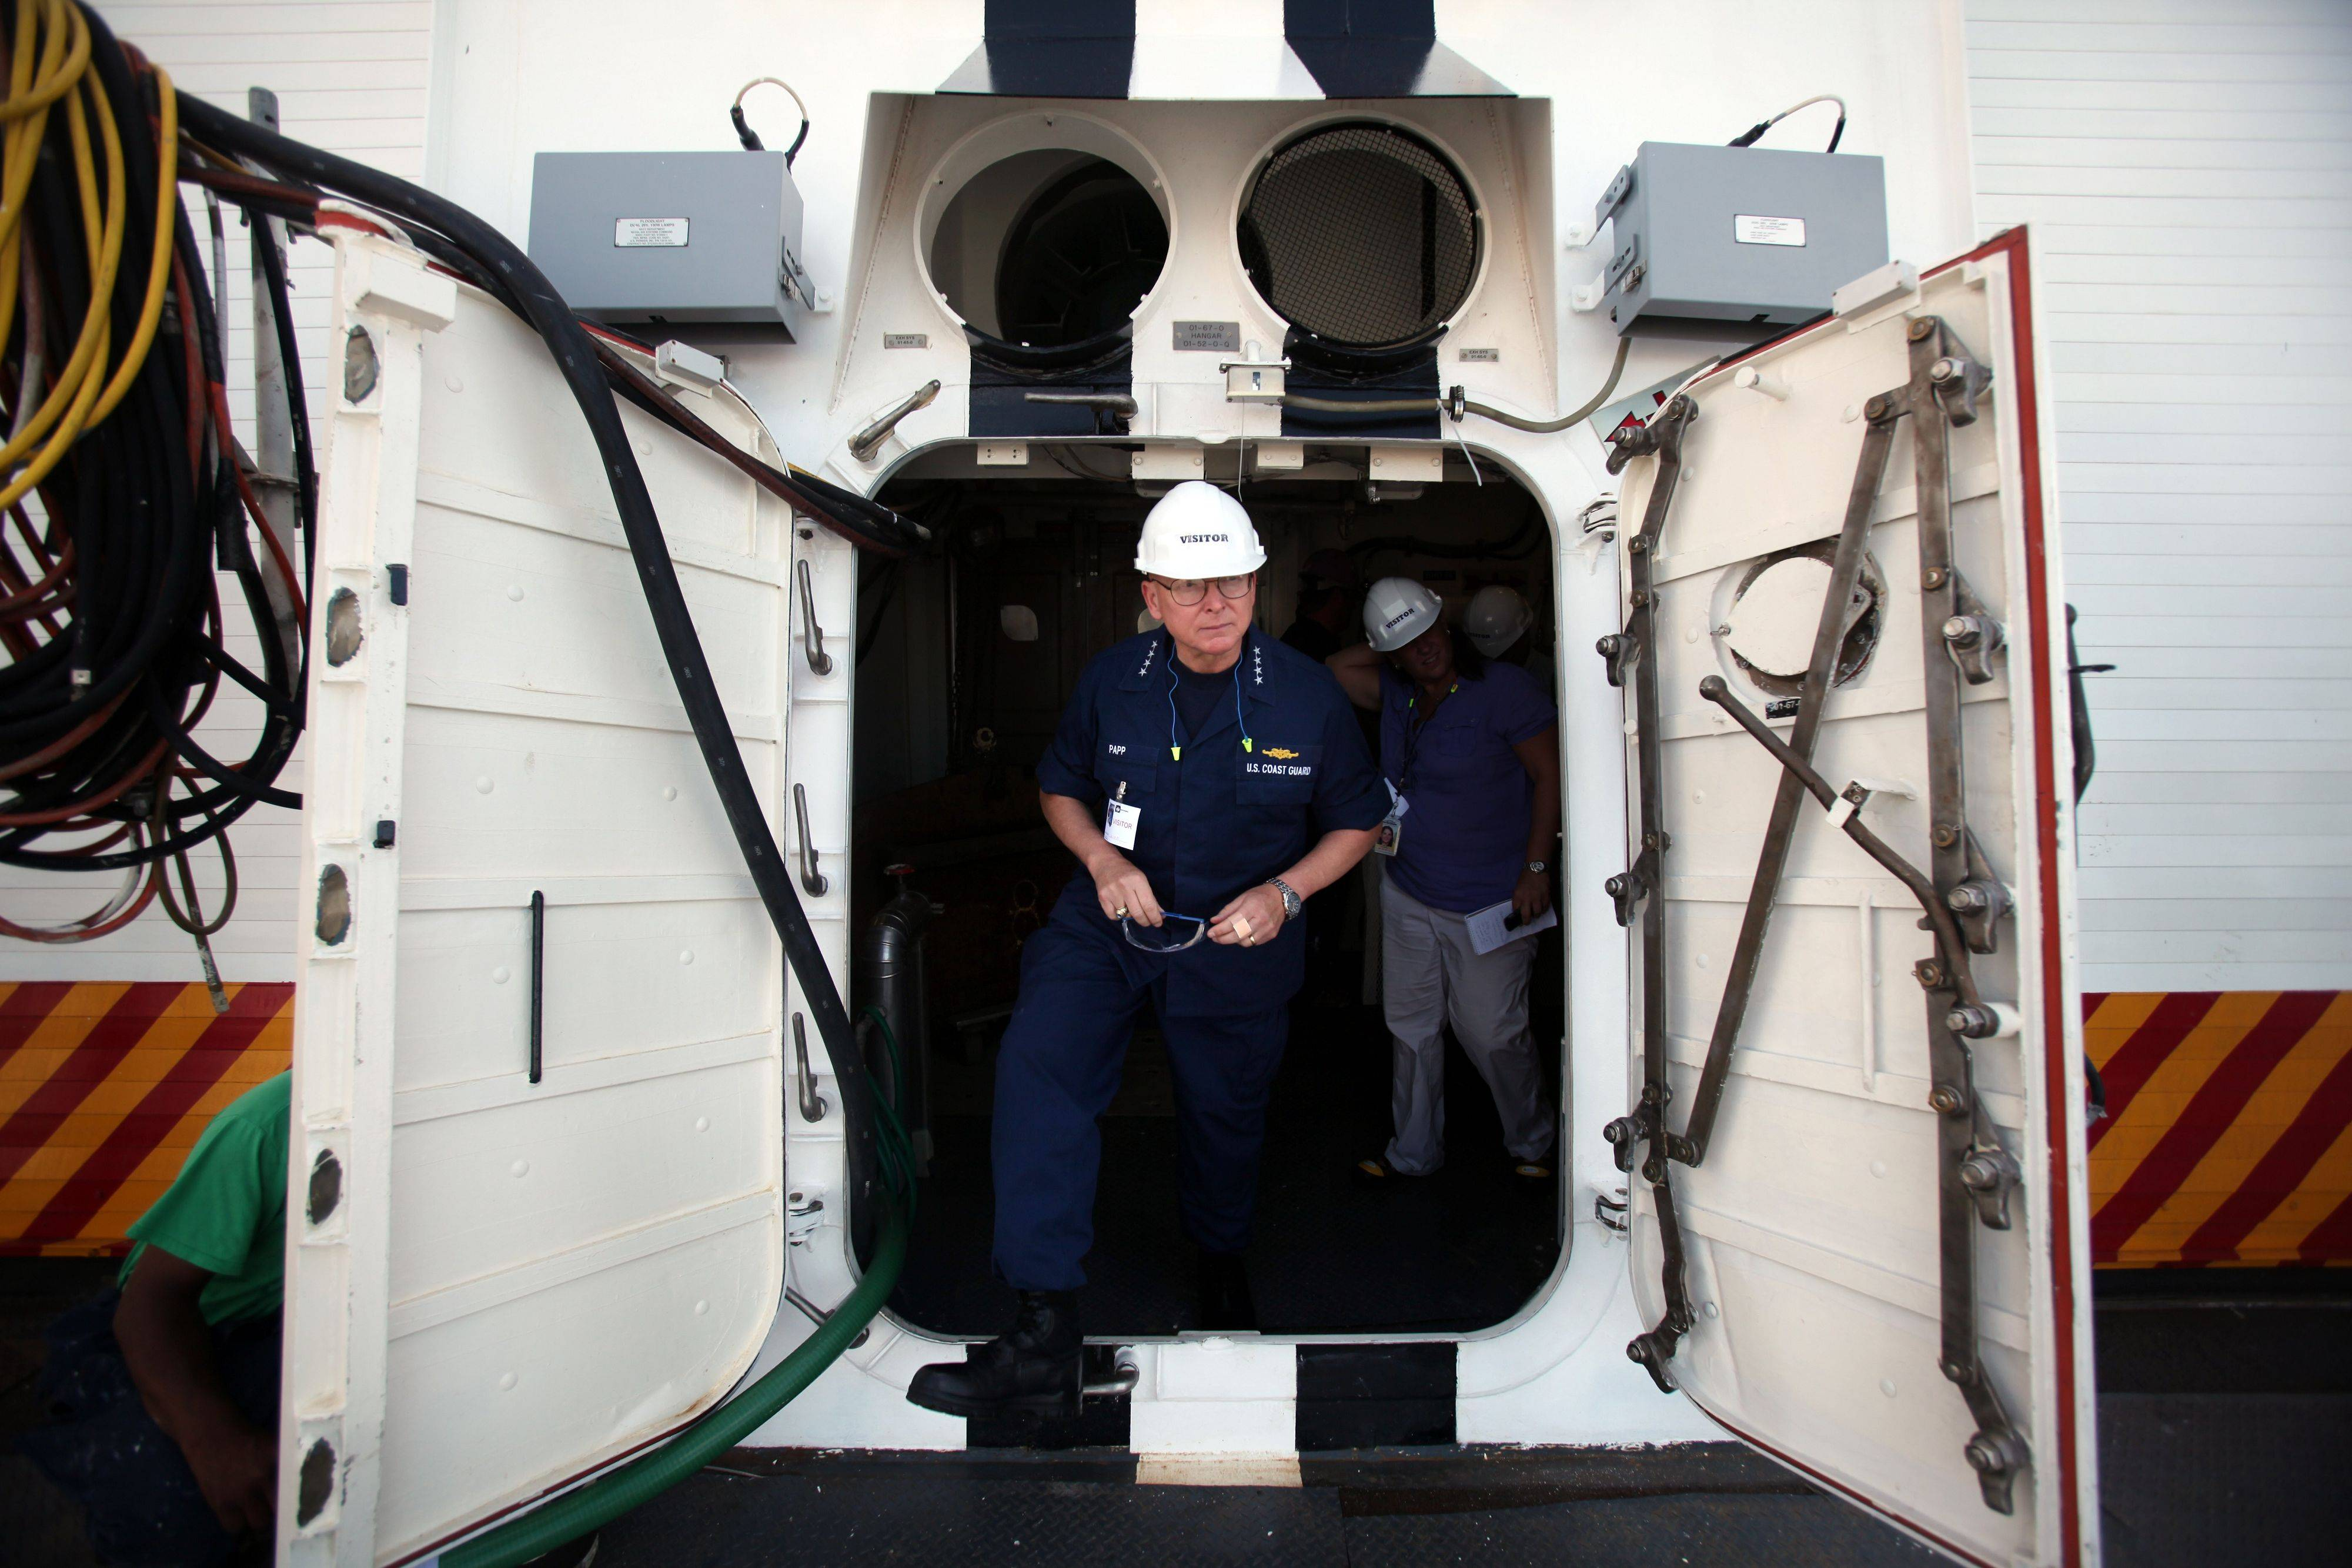 Adm. Robert J. Papp Jr. Commandant, U.S. Coast Guard walks onto the deck of the Coast Guard National Security Cutter Stratton (WMSL 752) during a tour of the new ship at Ingalls Shipbuilding in Pascagoula, Miss.